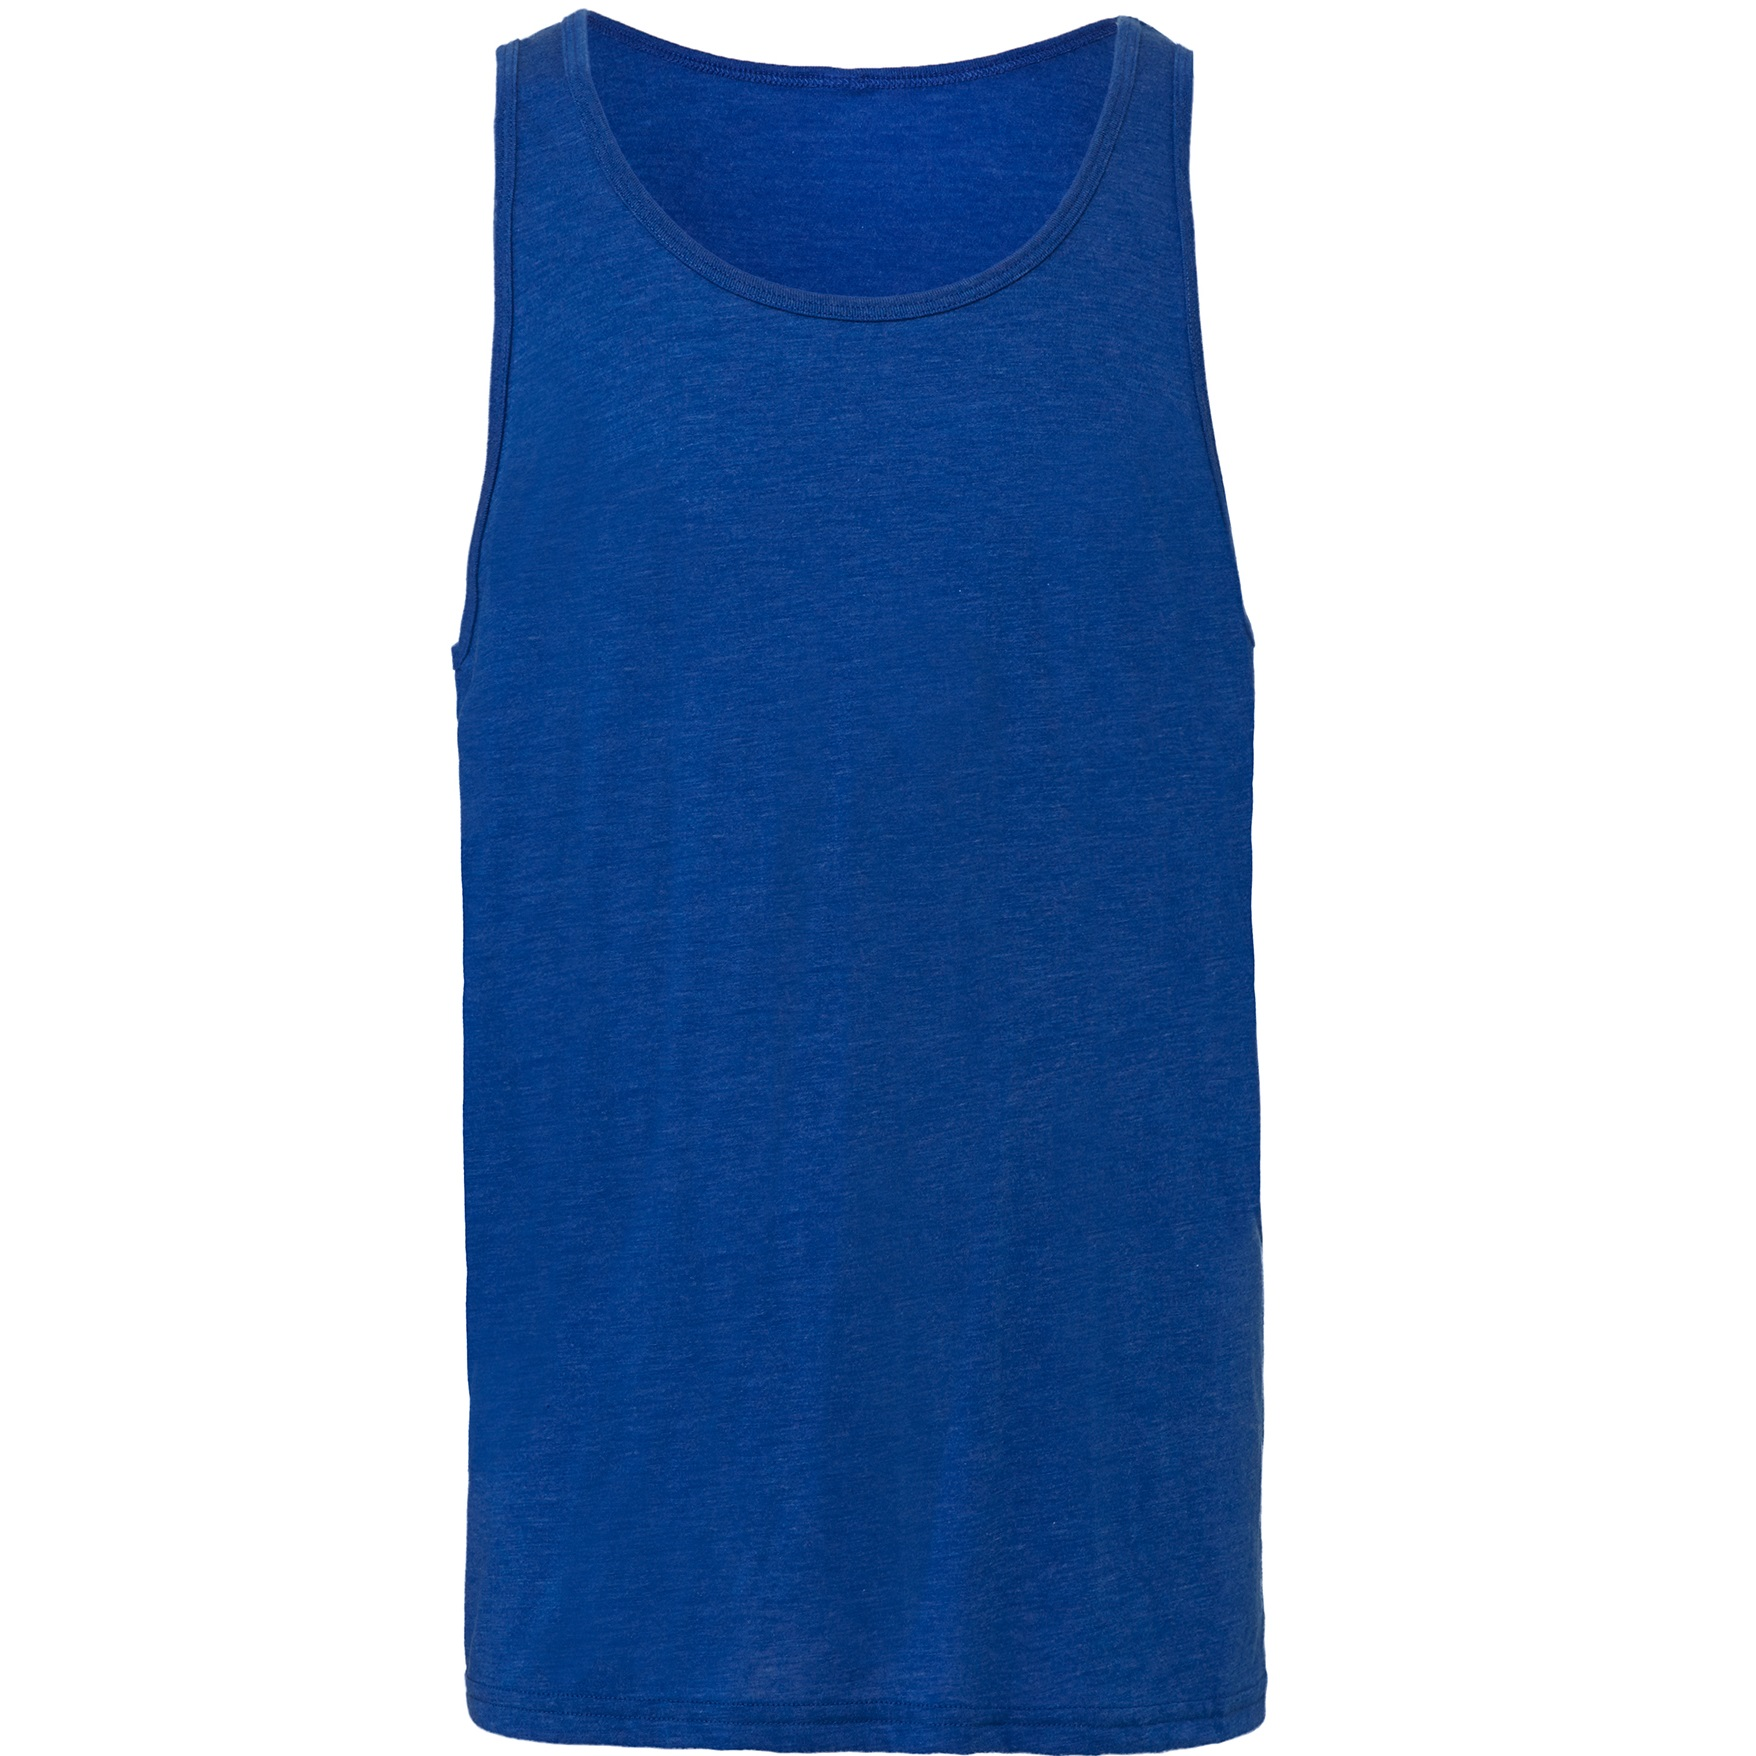 Blue TriBlend The Unisex Jersey Tank X-Small